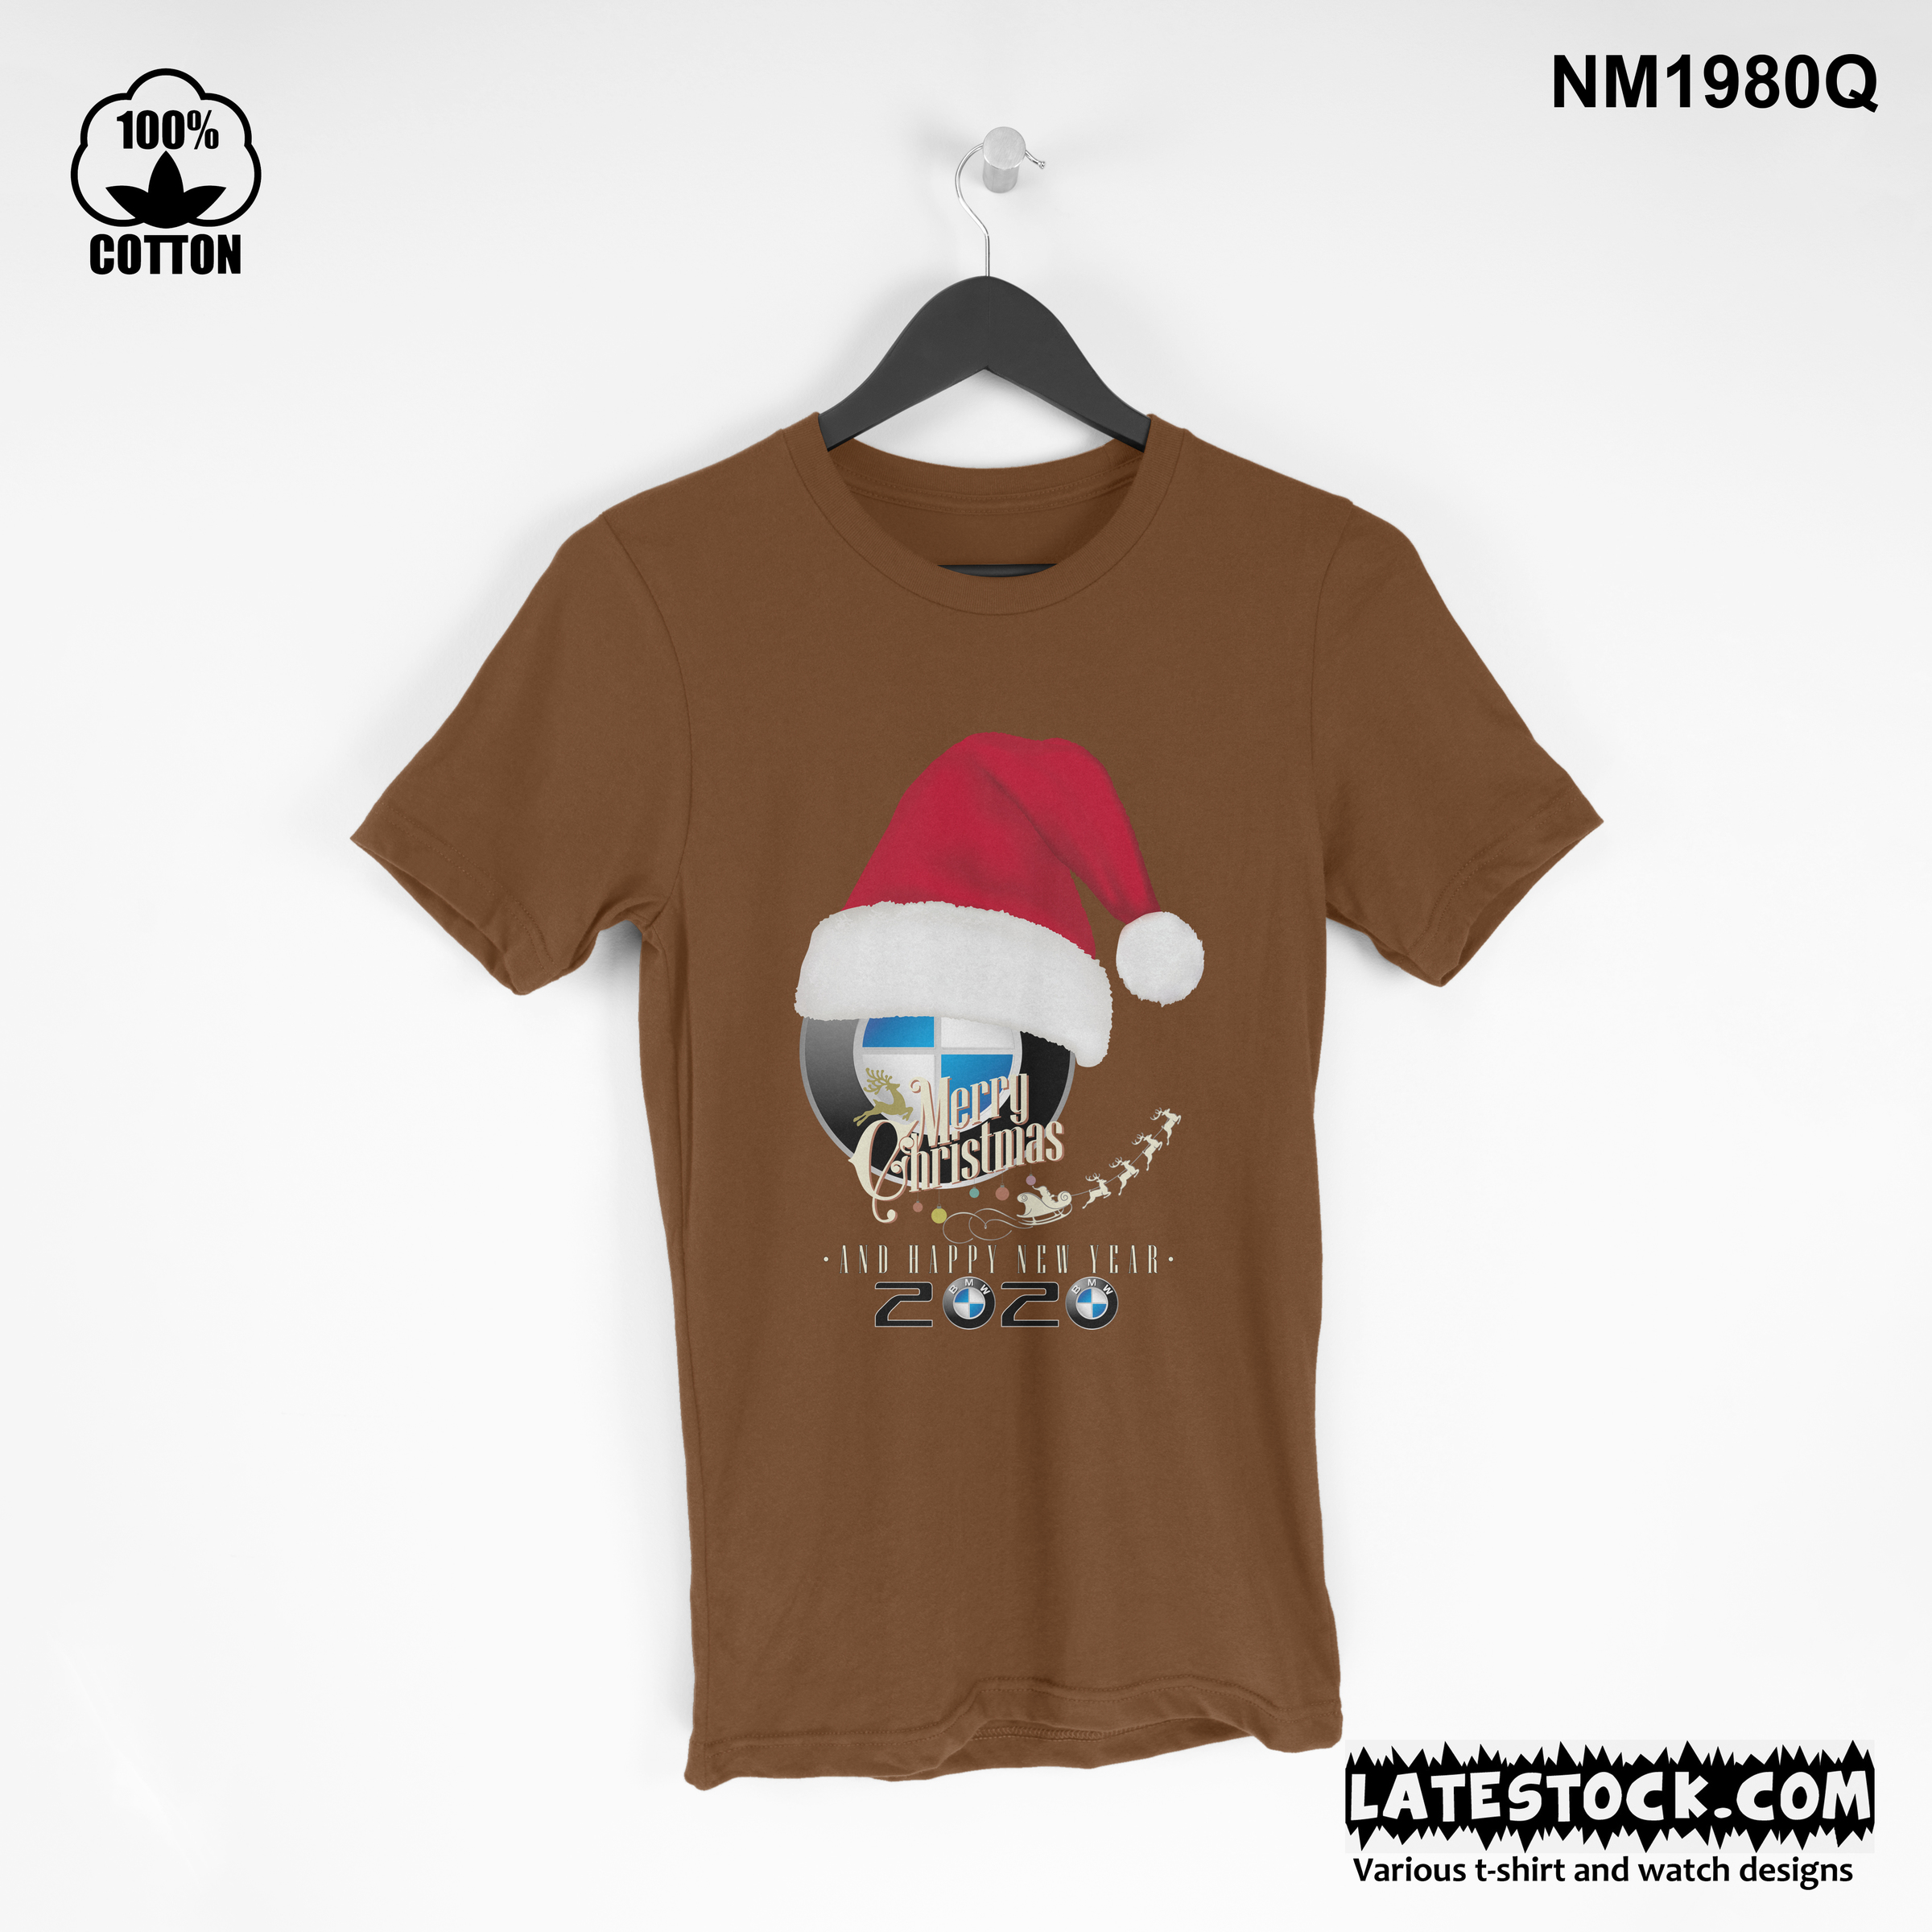 1.30 new Design BMW cristmas and new year t shirt Tee best gift saddle brown.jpg